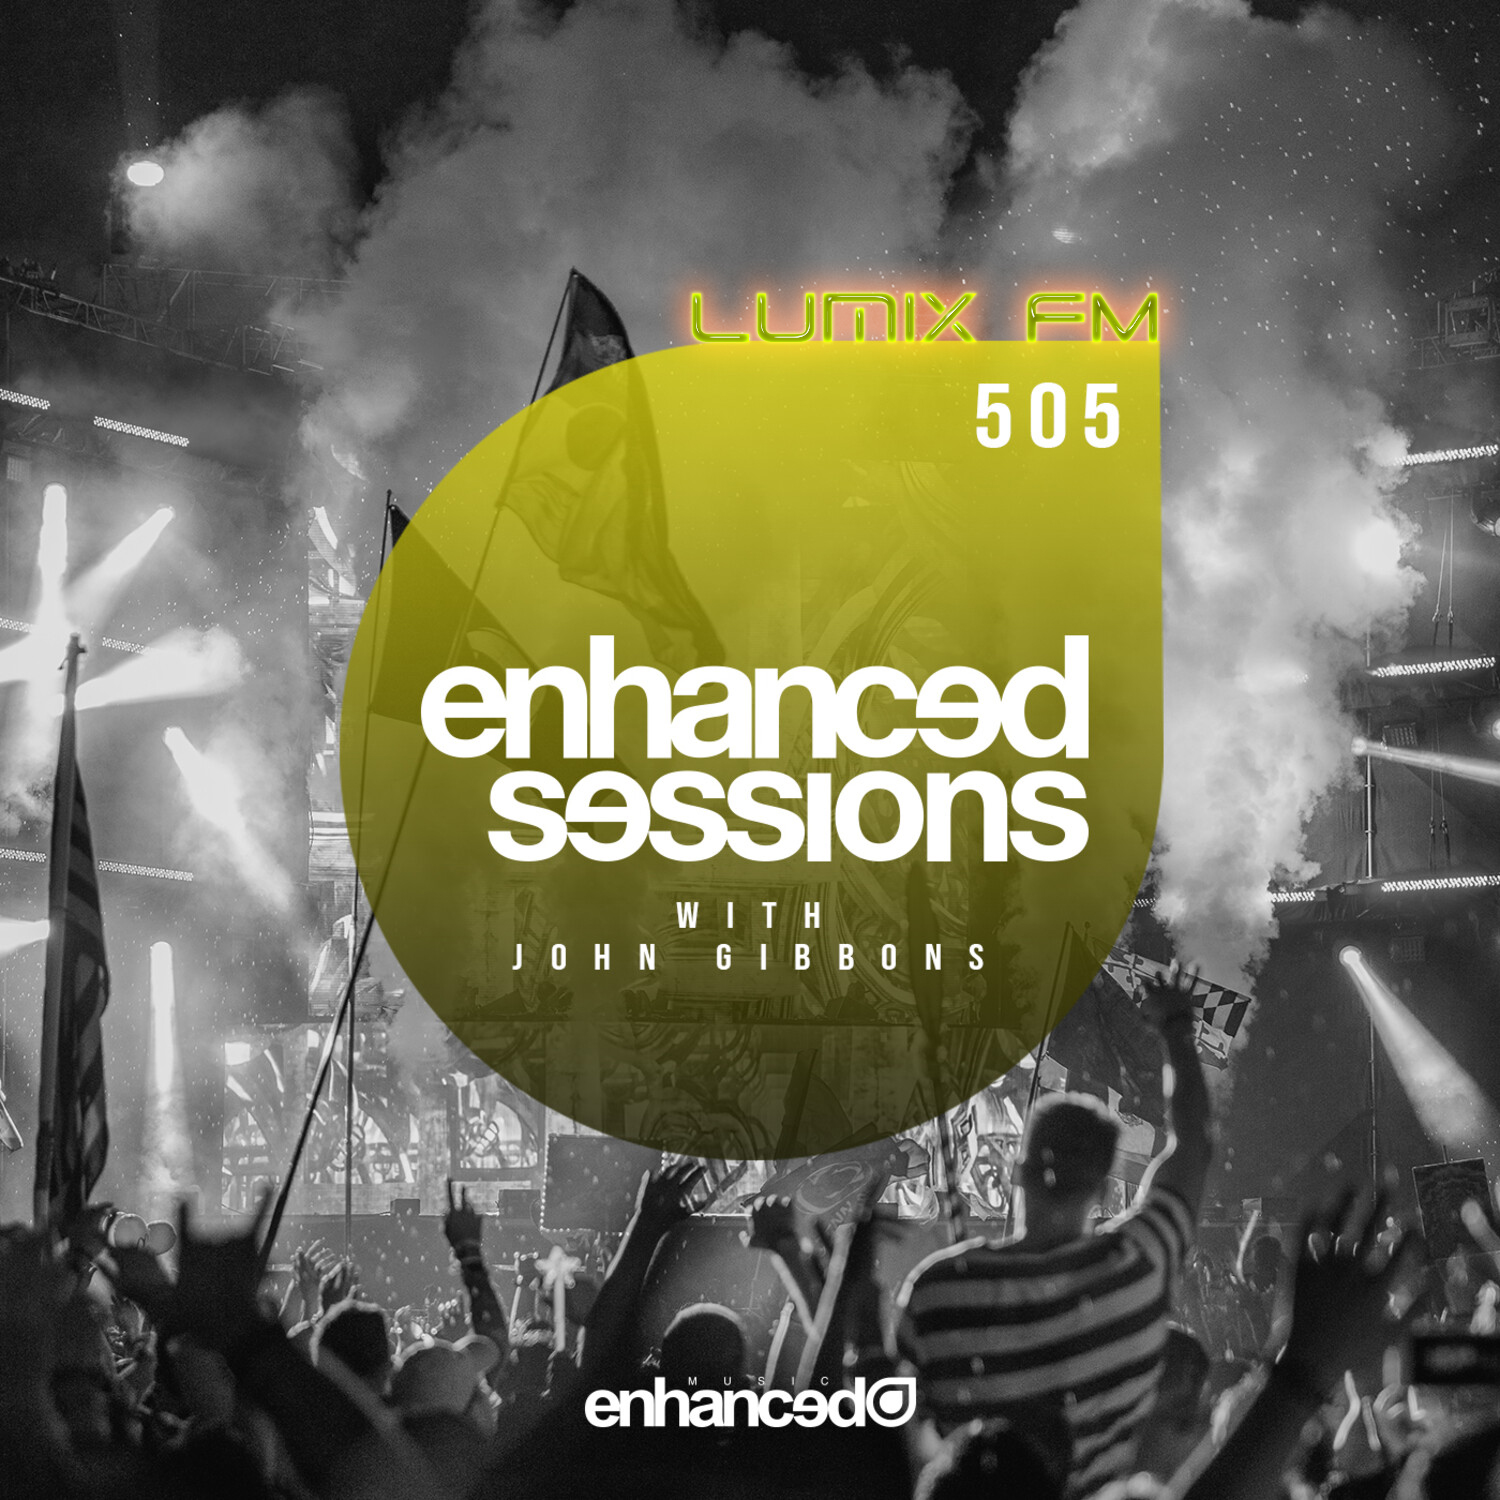 Enhanced Sessions #505 with John Gibbons